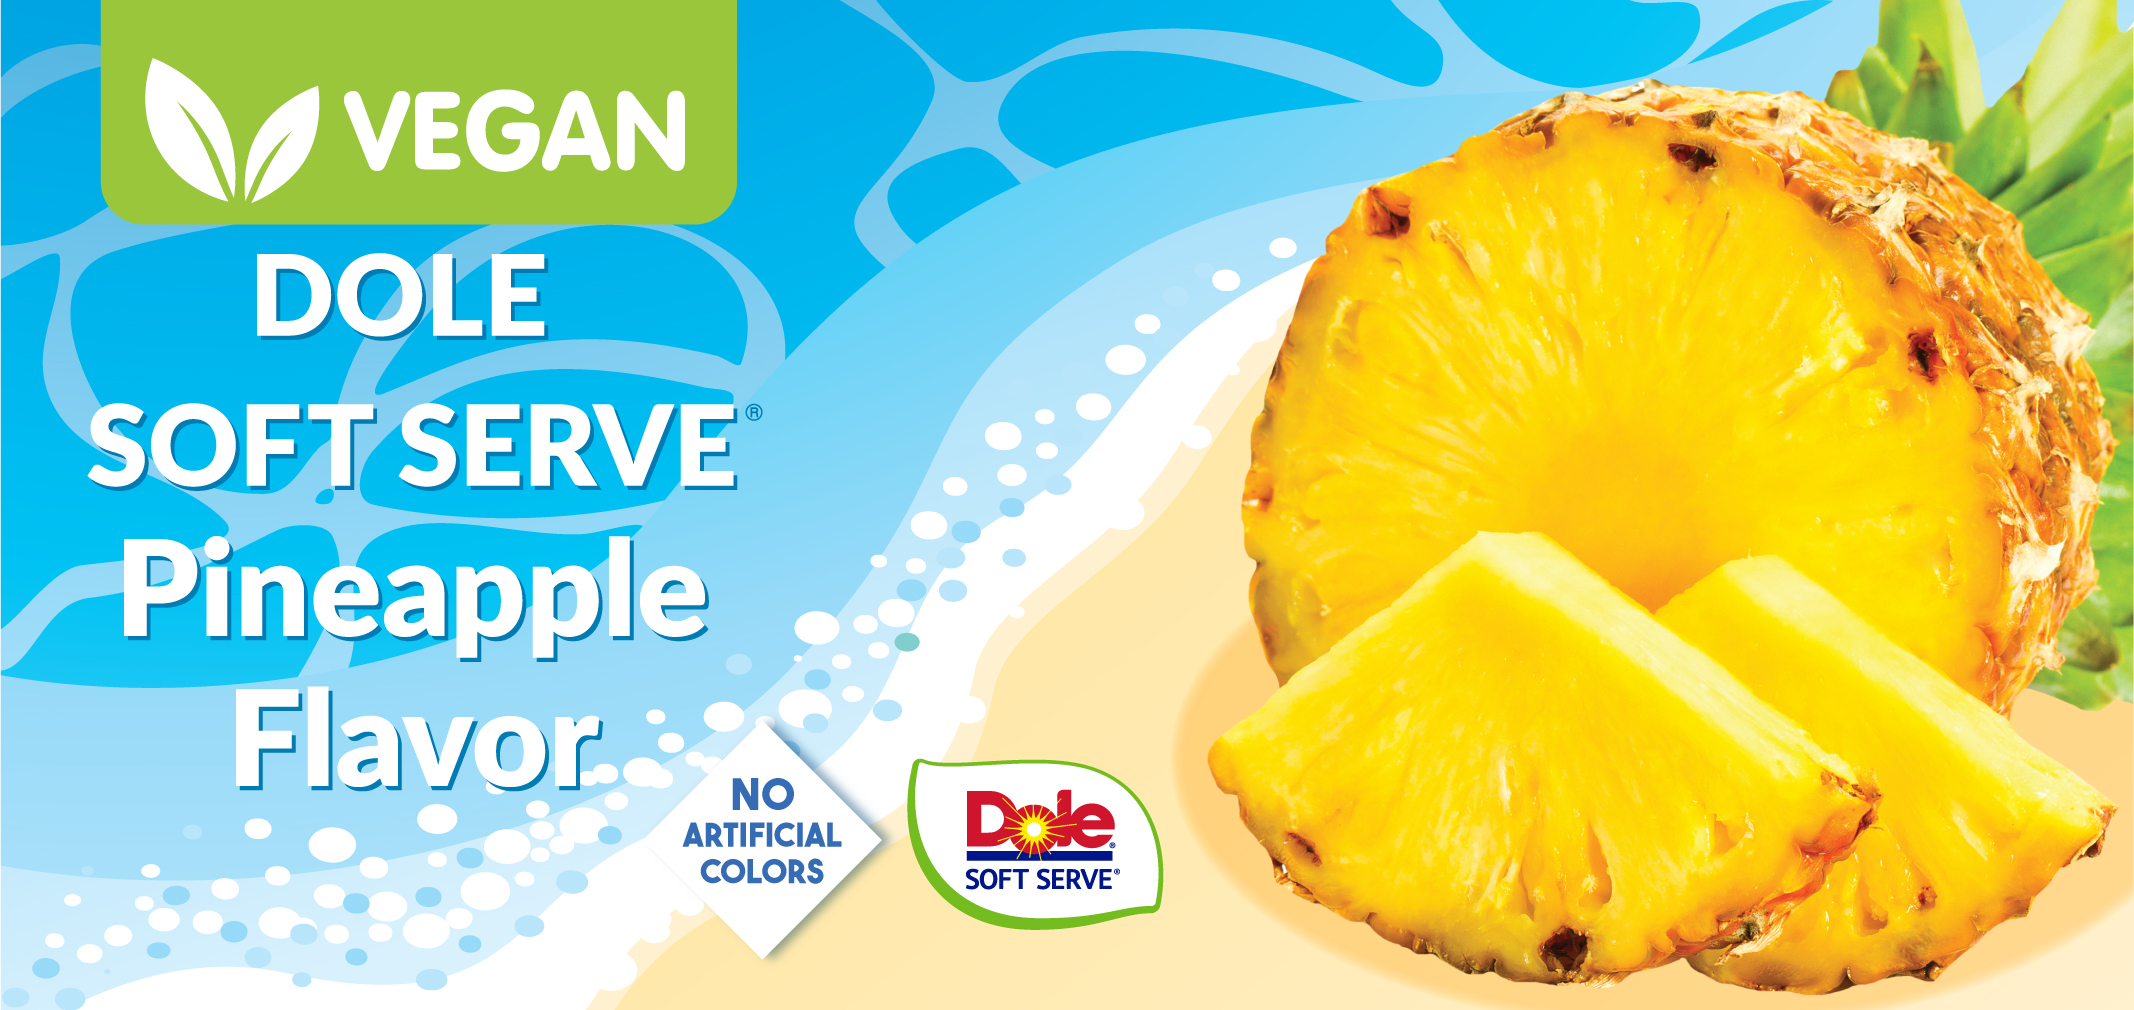 Dole® Soft Serve Pineapple Flavor label image